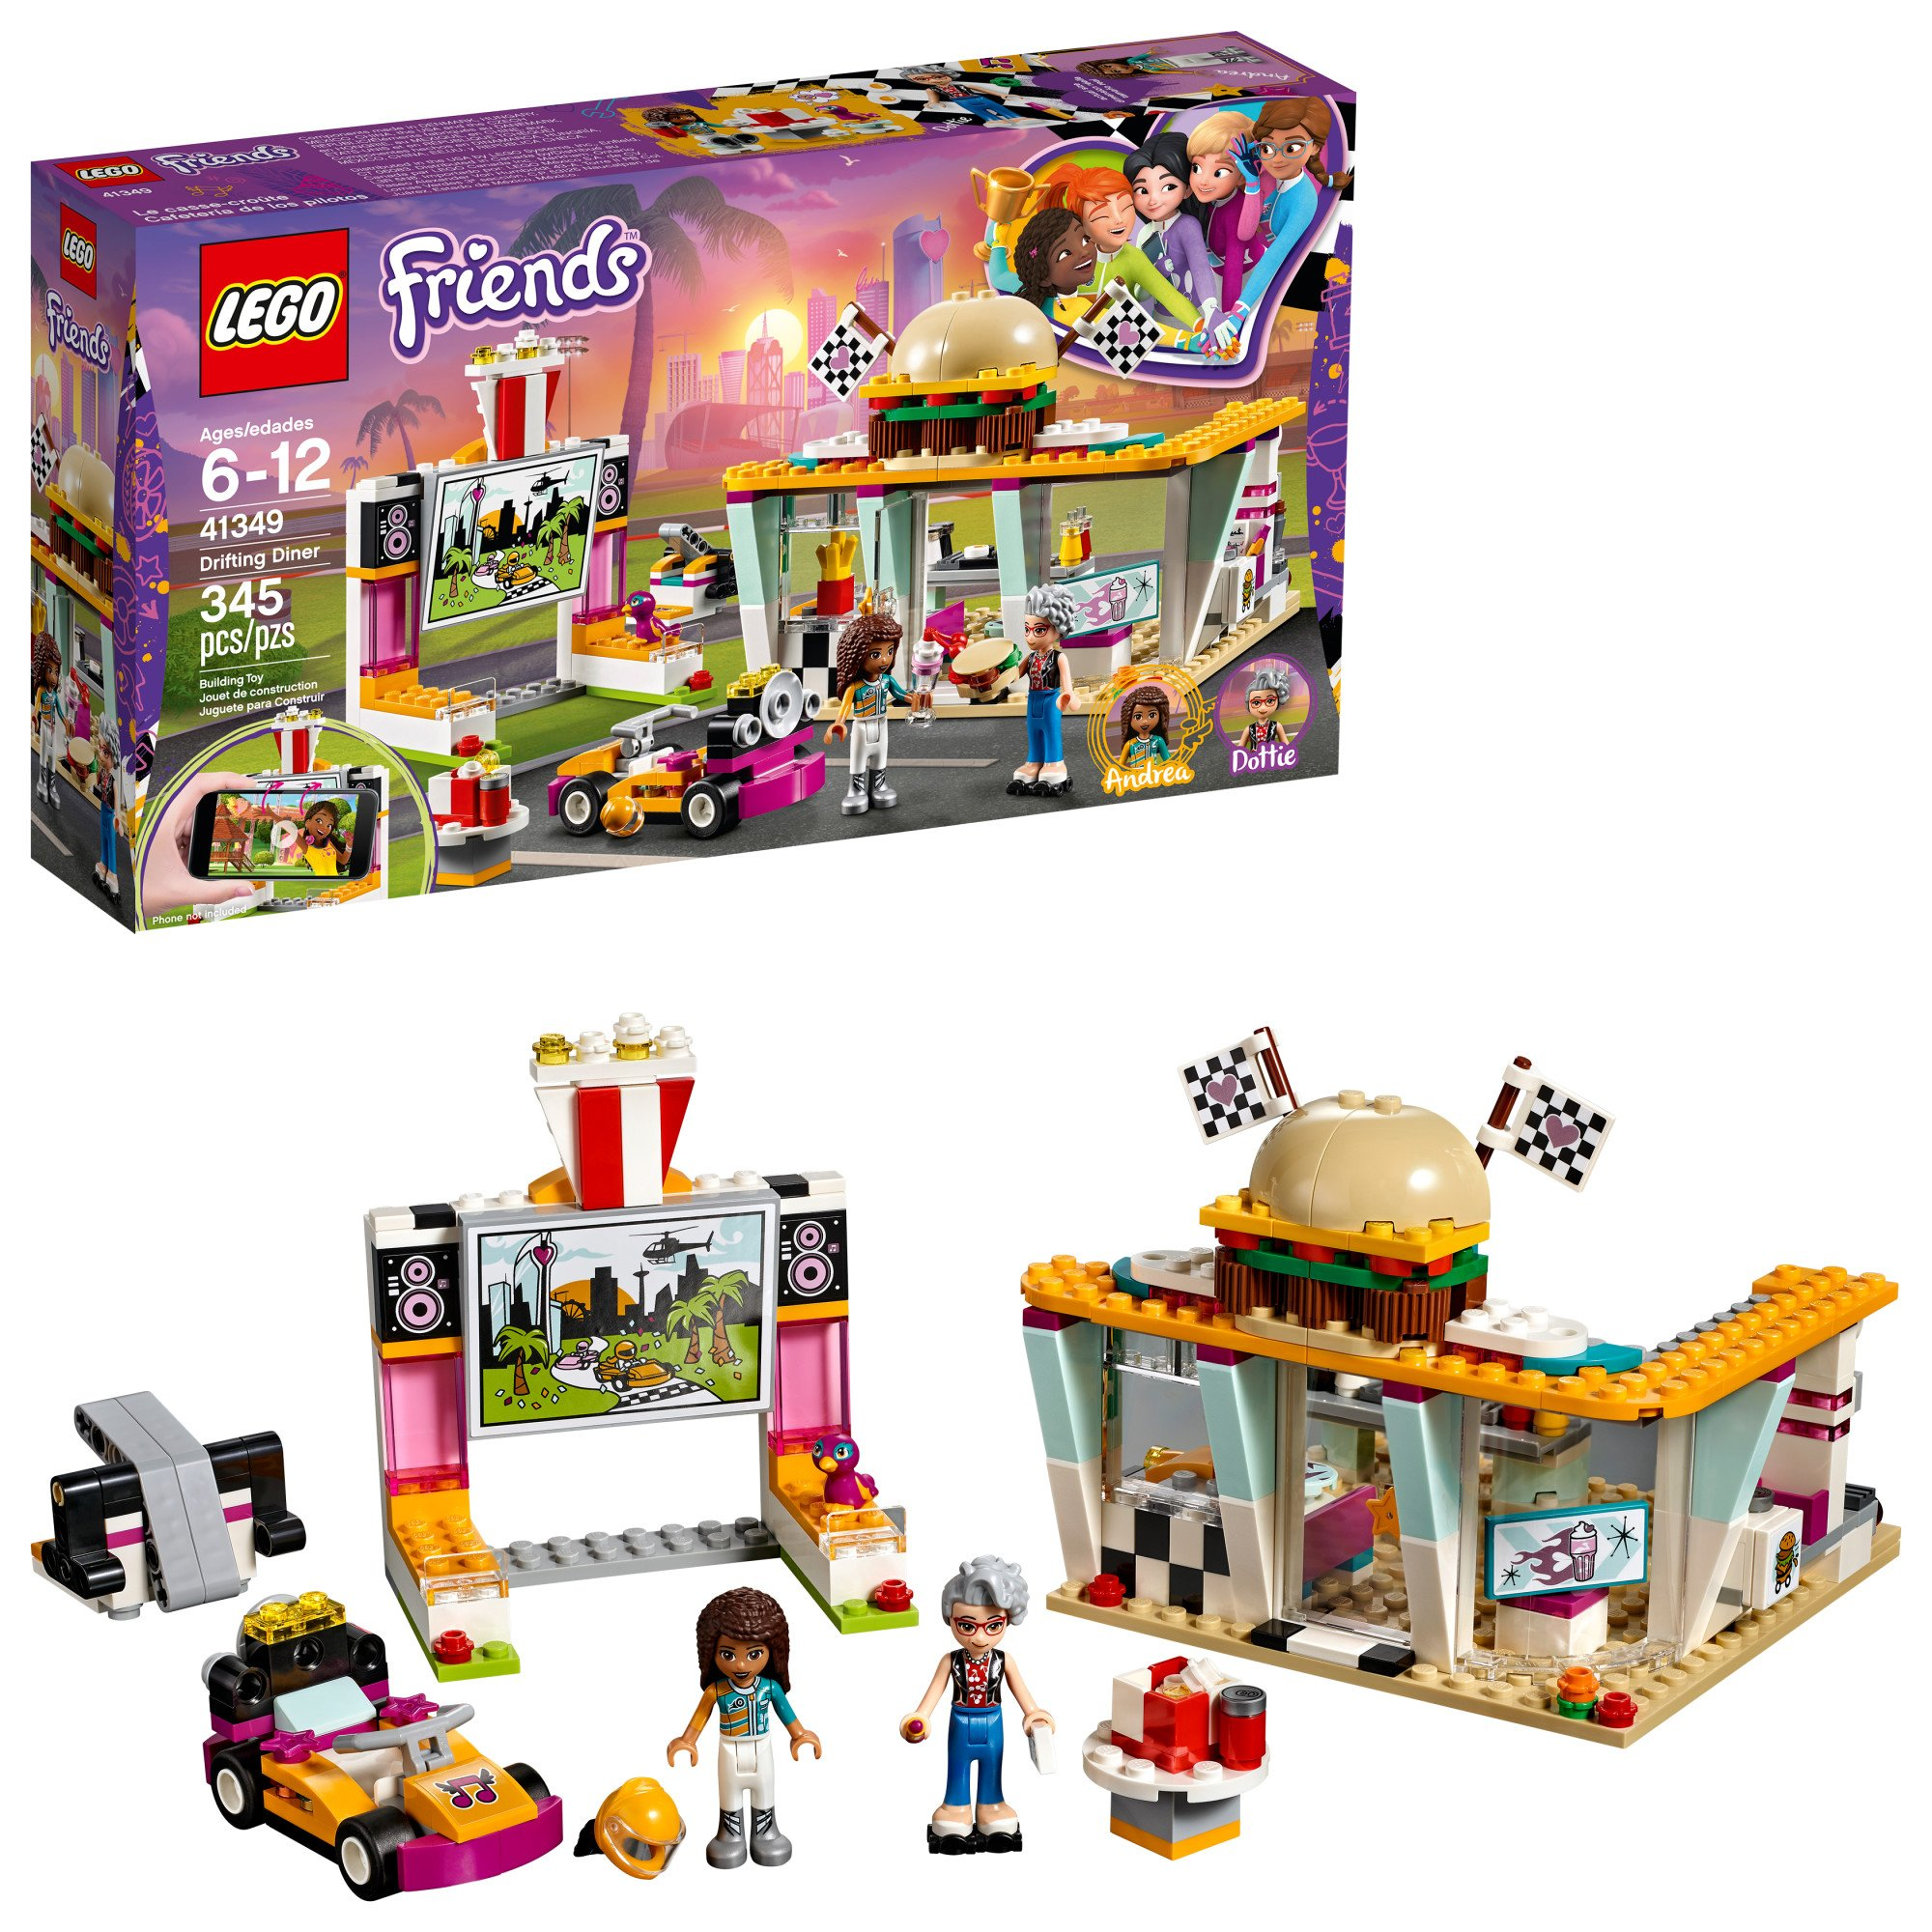 Lego Friends Christmas Sets.Details About Lego Friends Drifting Diner 41349 Race Car Go Kart Toy Christmas Gift For Kids